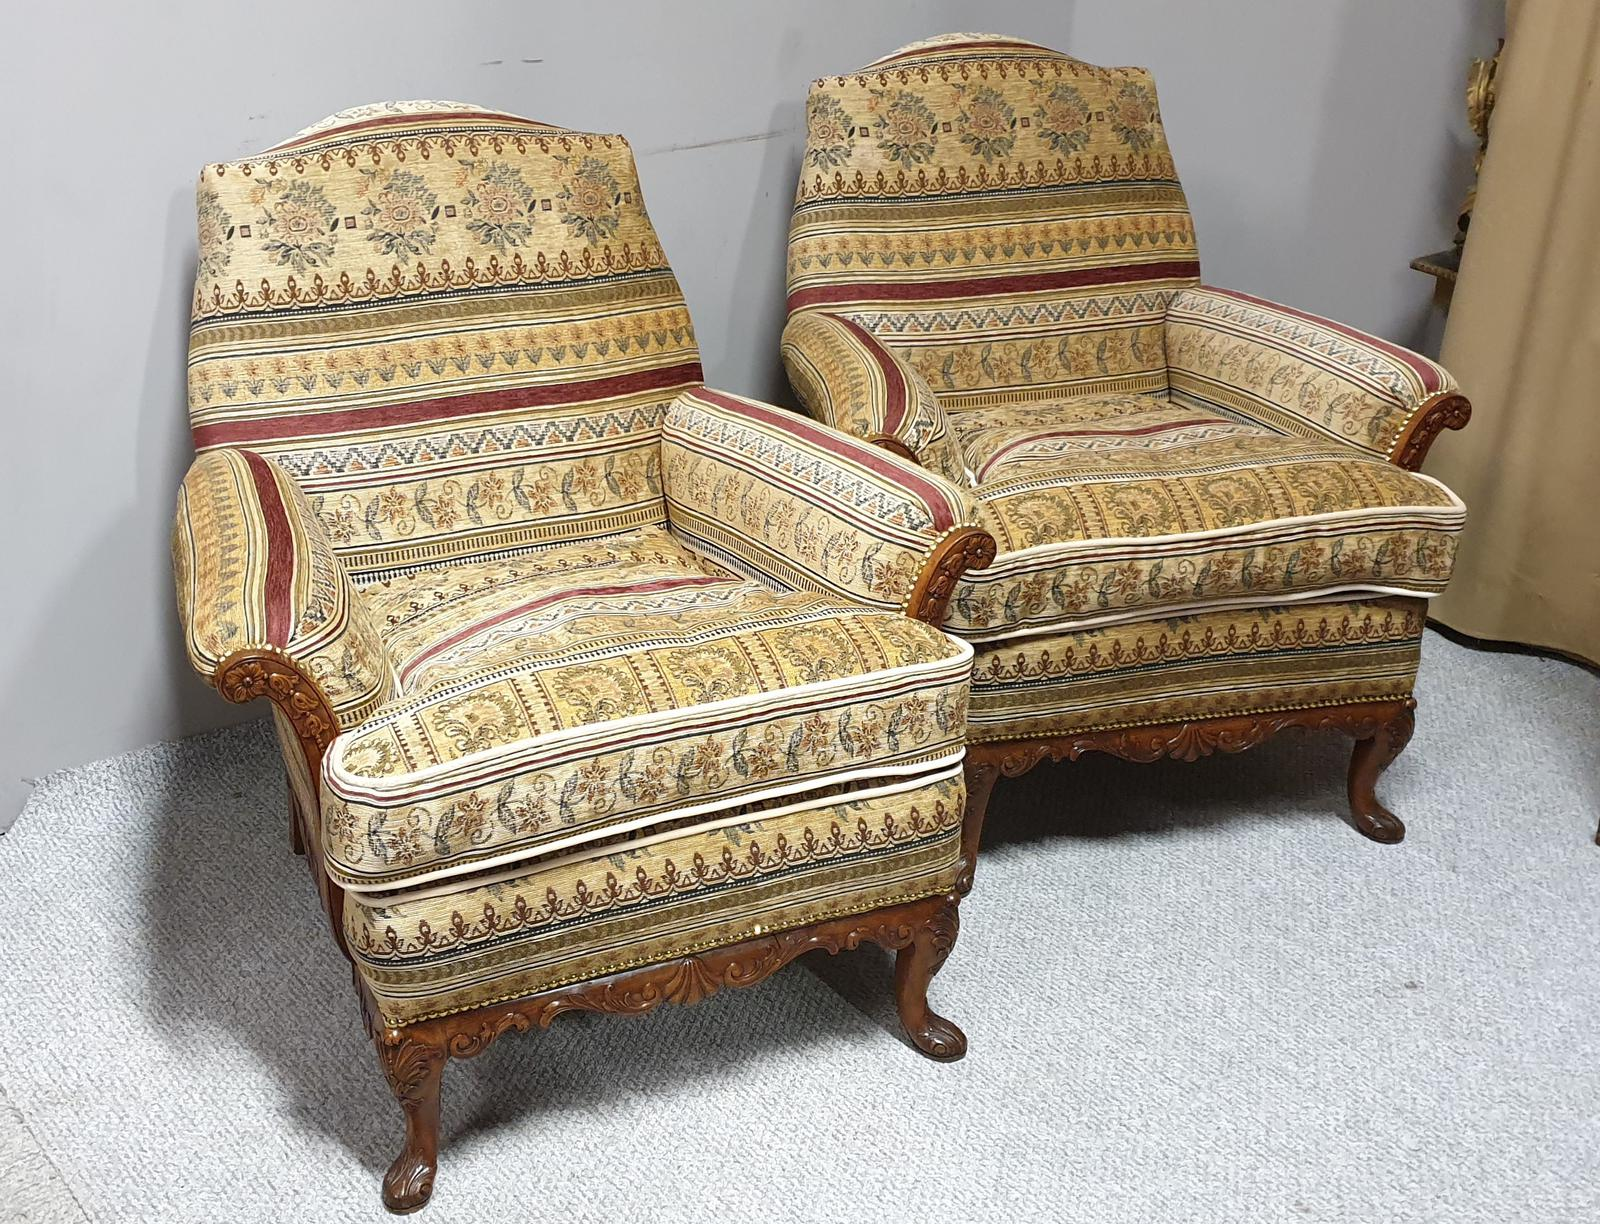 Outstanding Pair of English Armchairs (1 of 1)